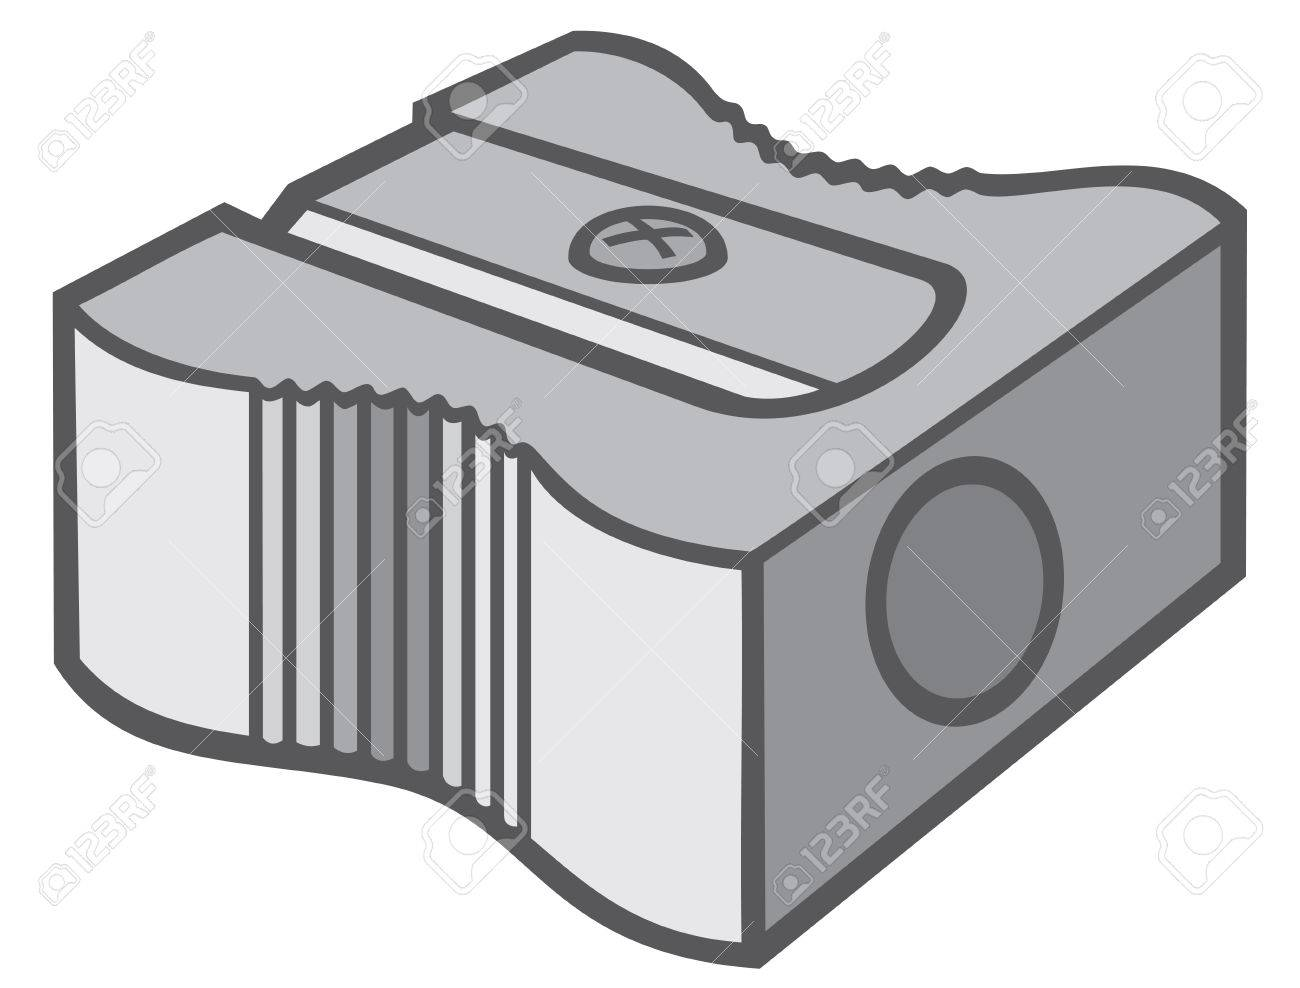 pencil sharpener royalty free cliparts, vectors, and stock